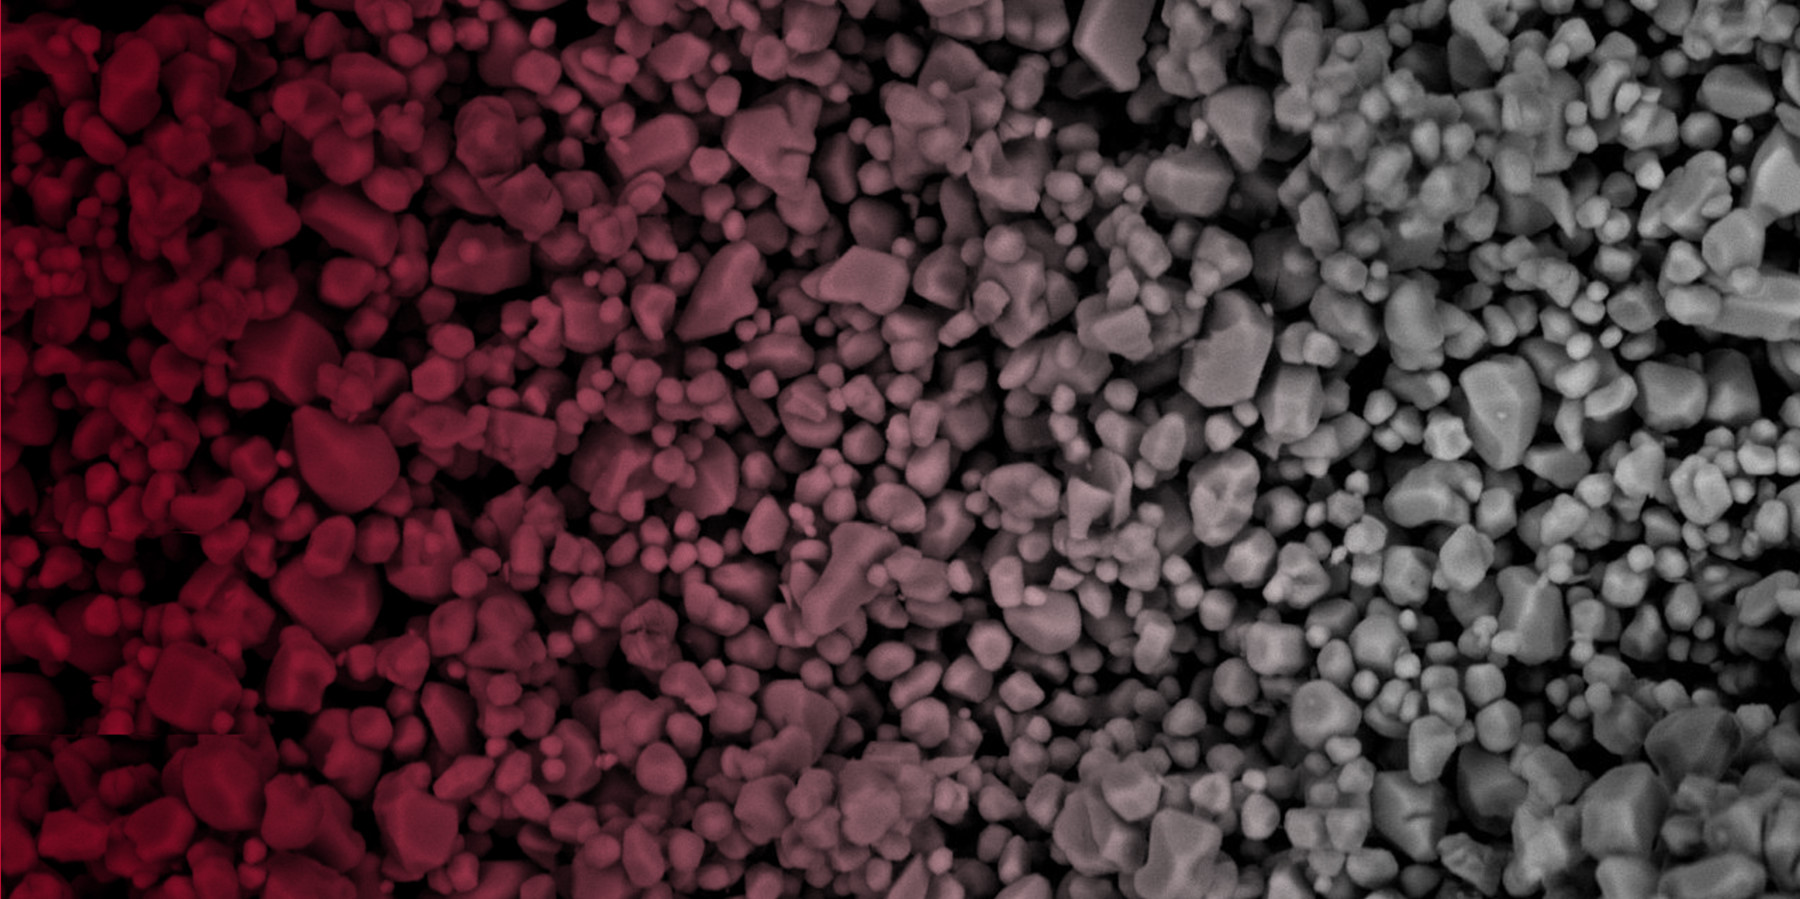 scanning electron microscope image of phosphor particles